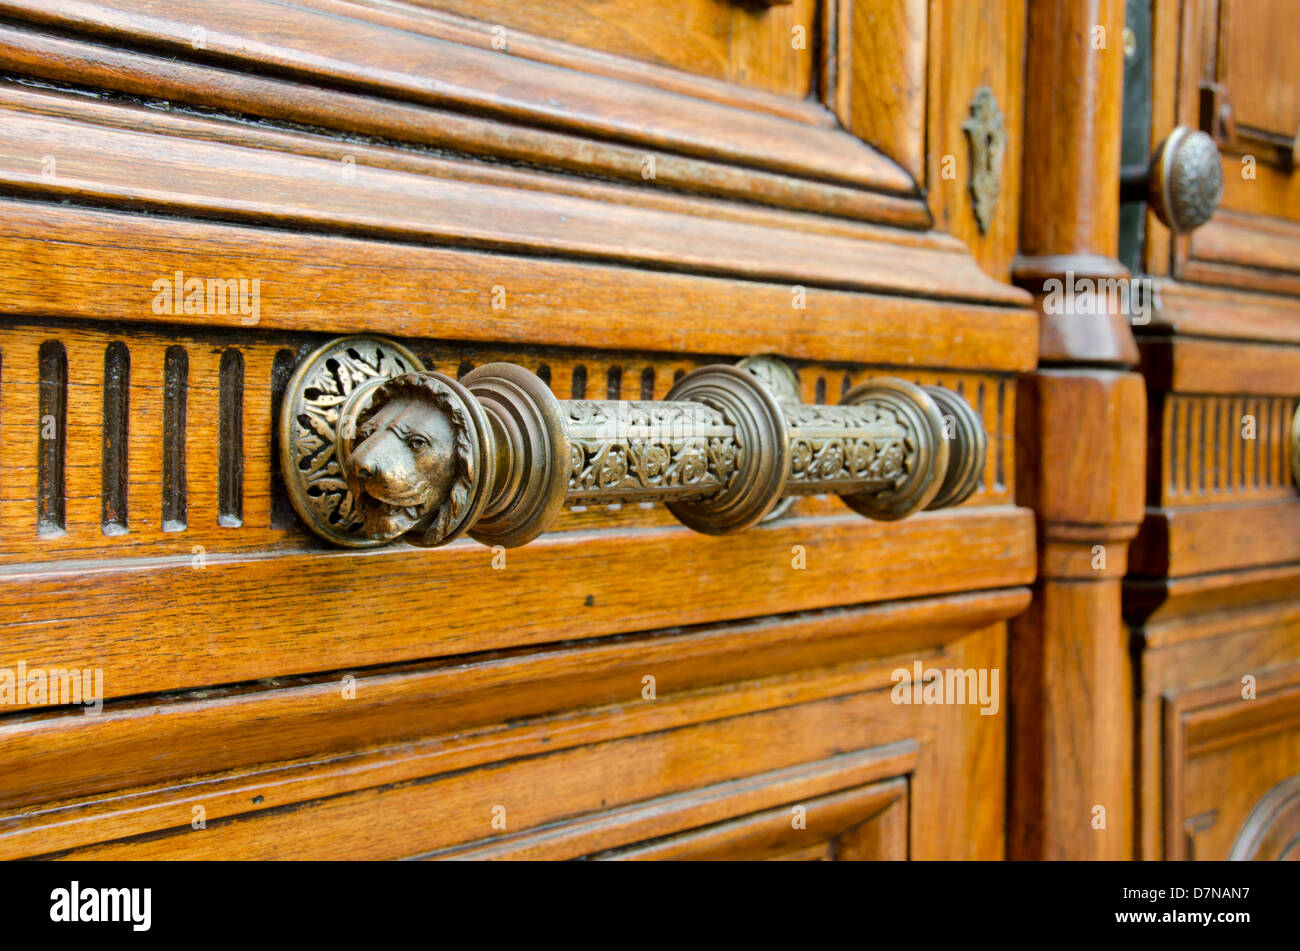 New York, Troy. Historic wooden doors of the Vail House part of Russell Sage College. - Stock Image